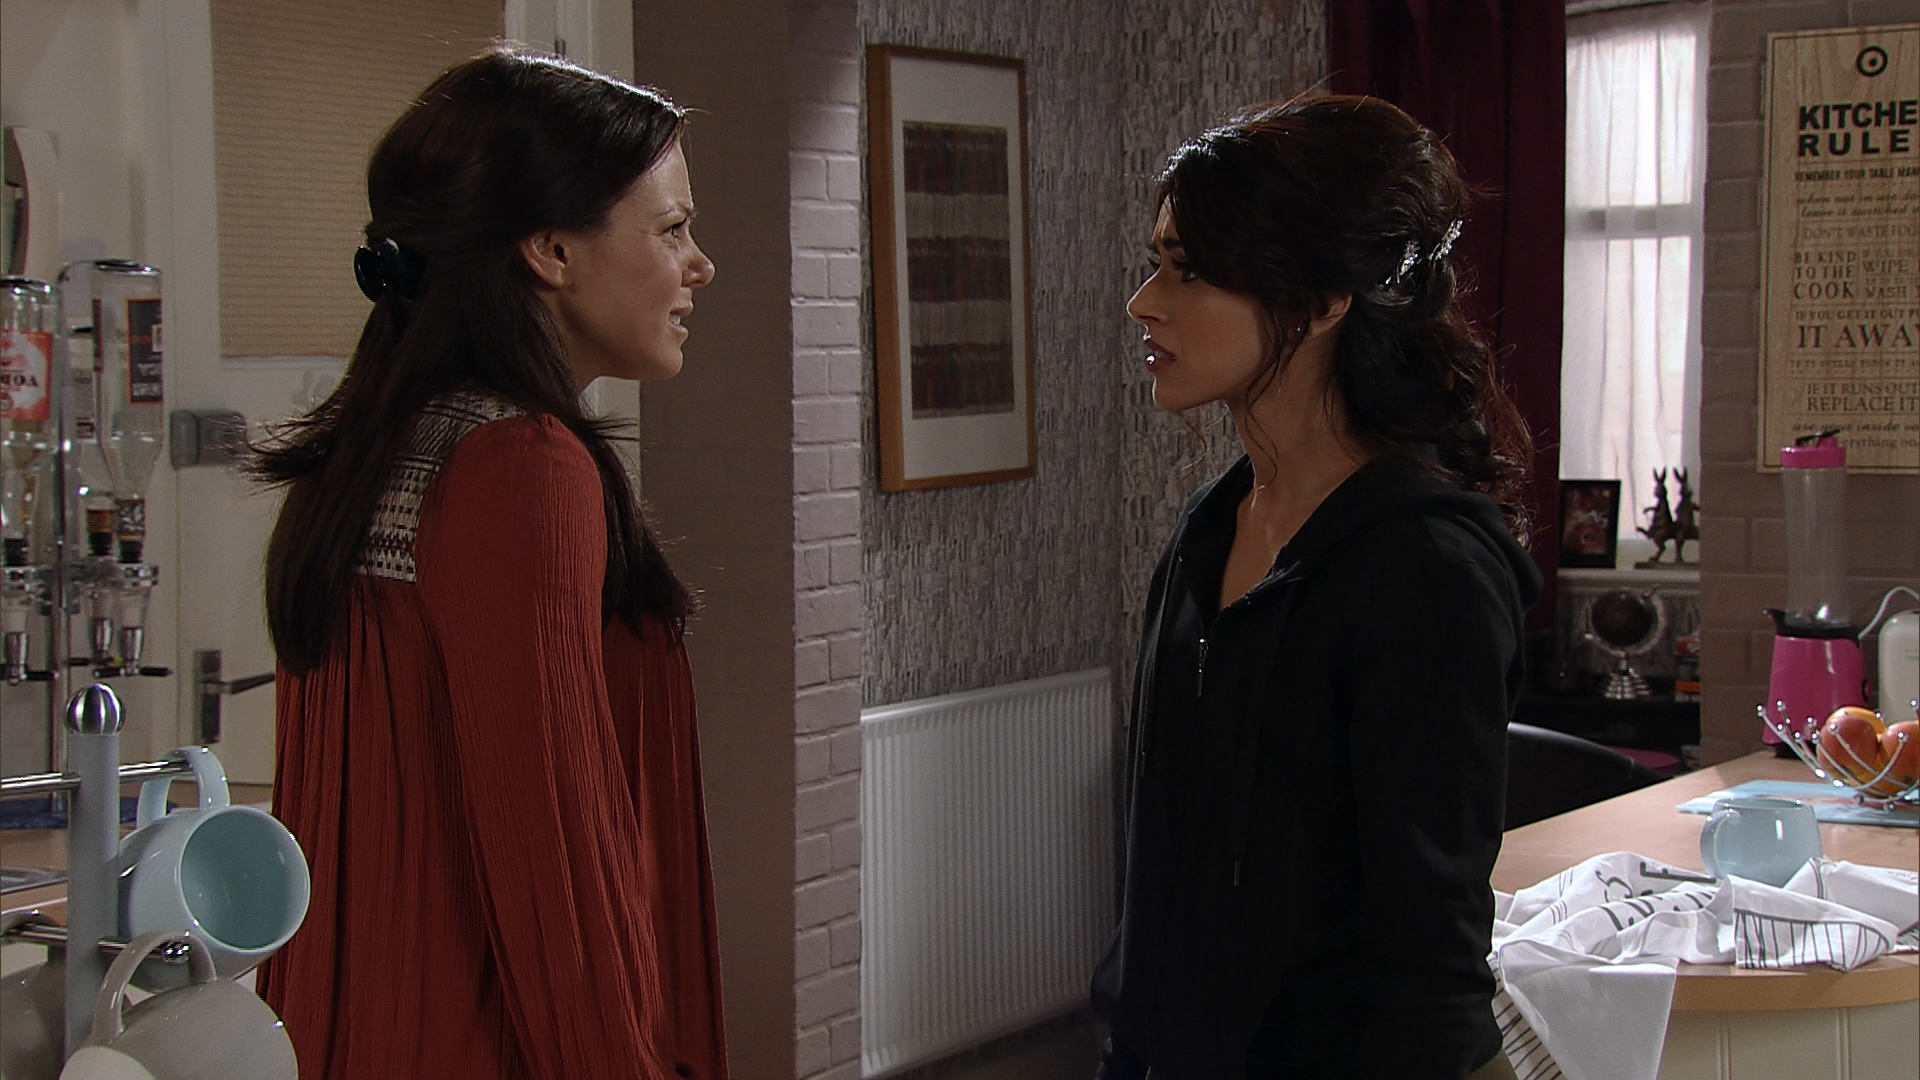 CORRIE 9301 FRI 17TH NOV 1930 PREVIEW CLIP